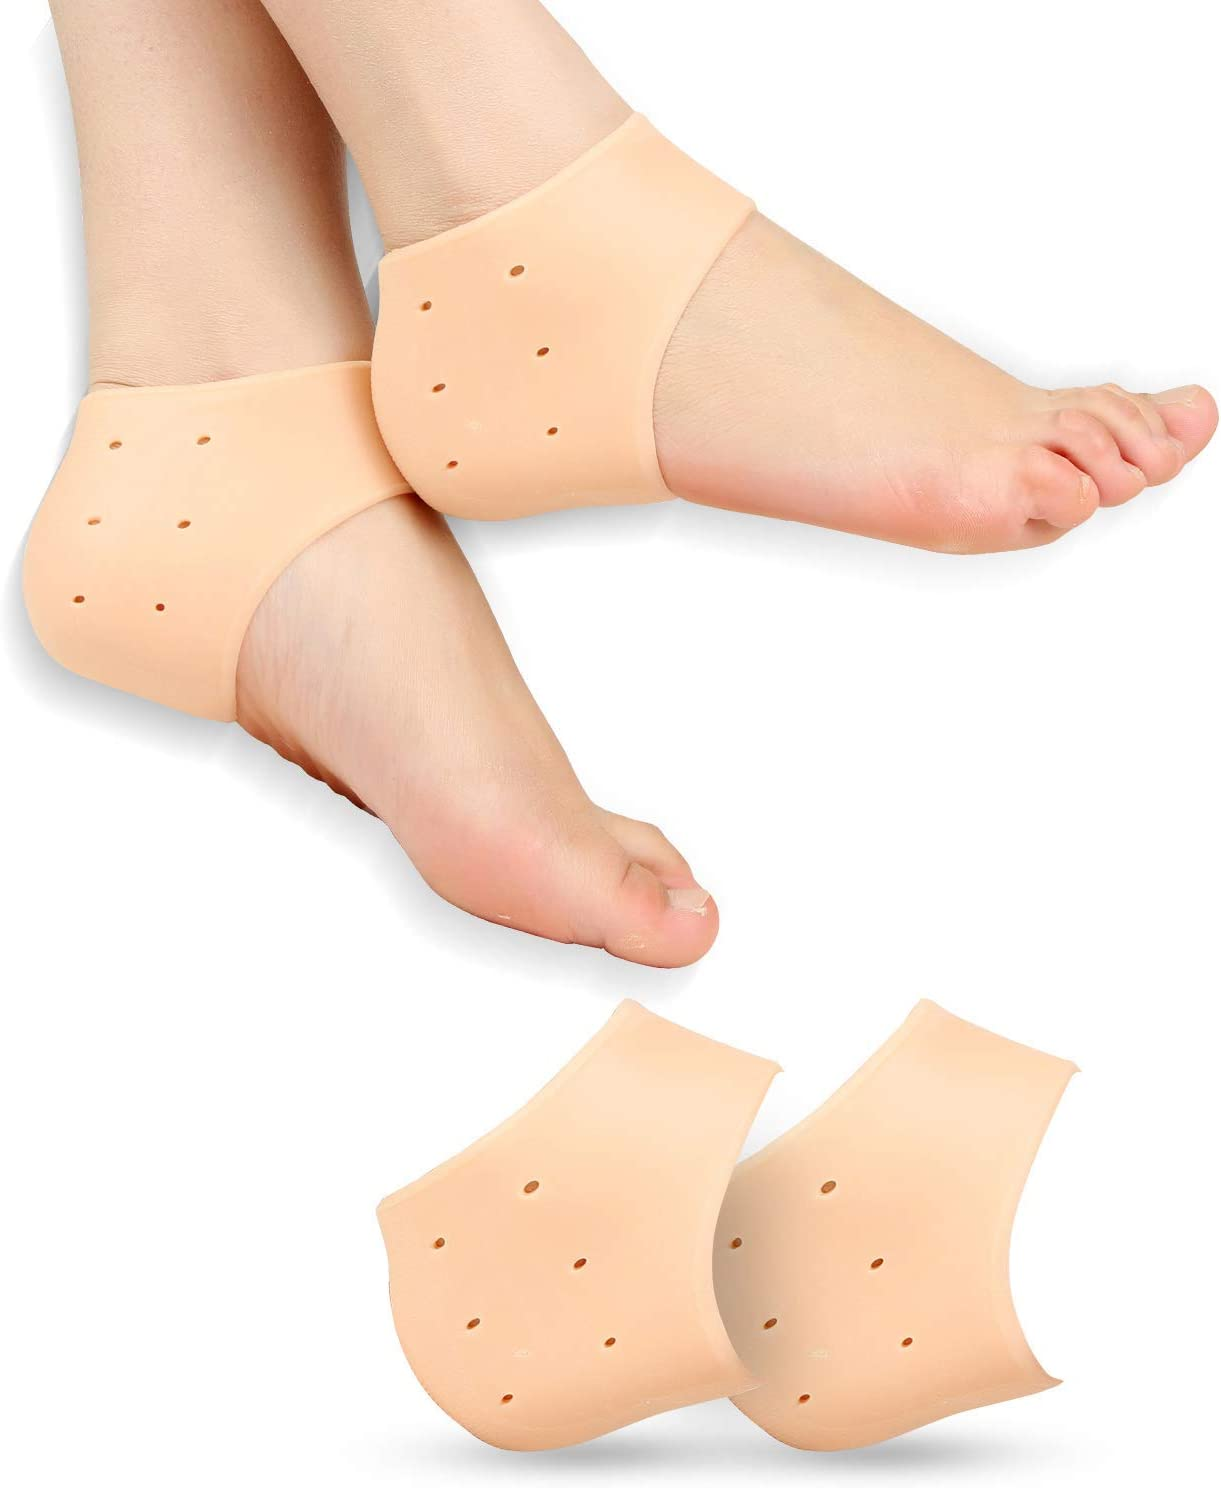 2 Pairs Silicone Smooth Skin Heel Socks Protector for Cracked Foot Skin Care